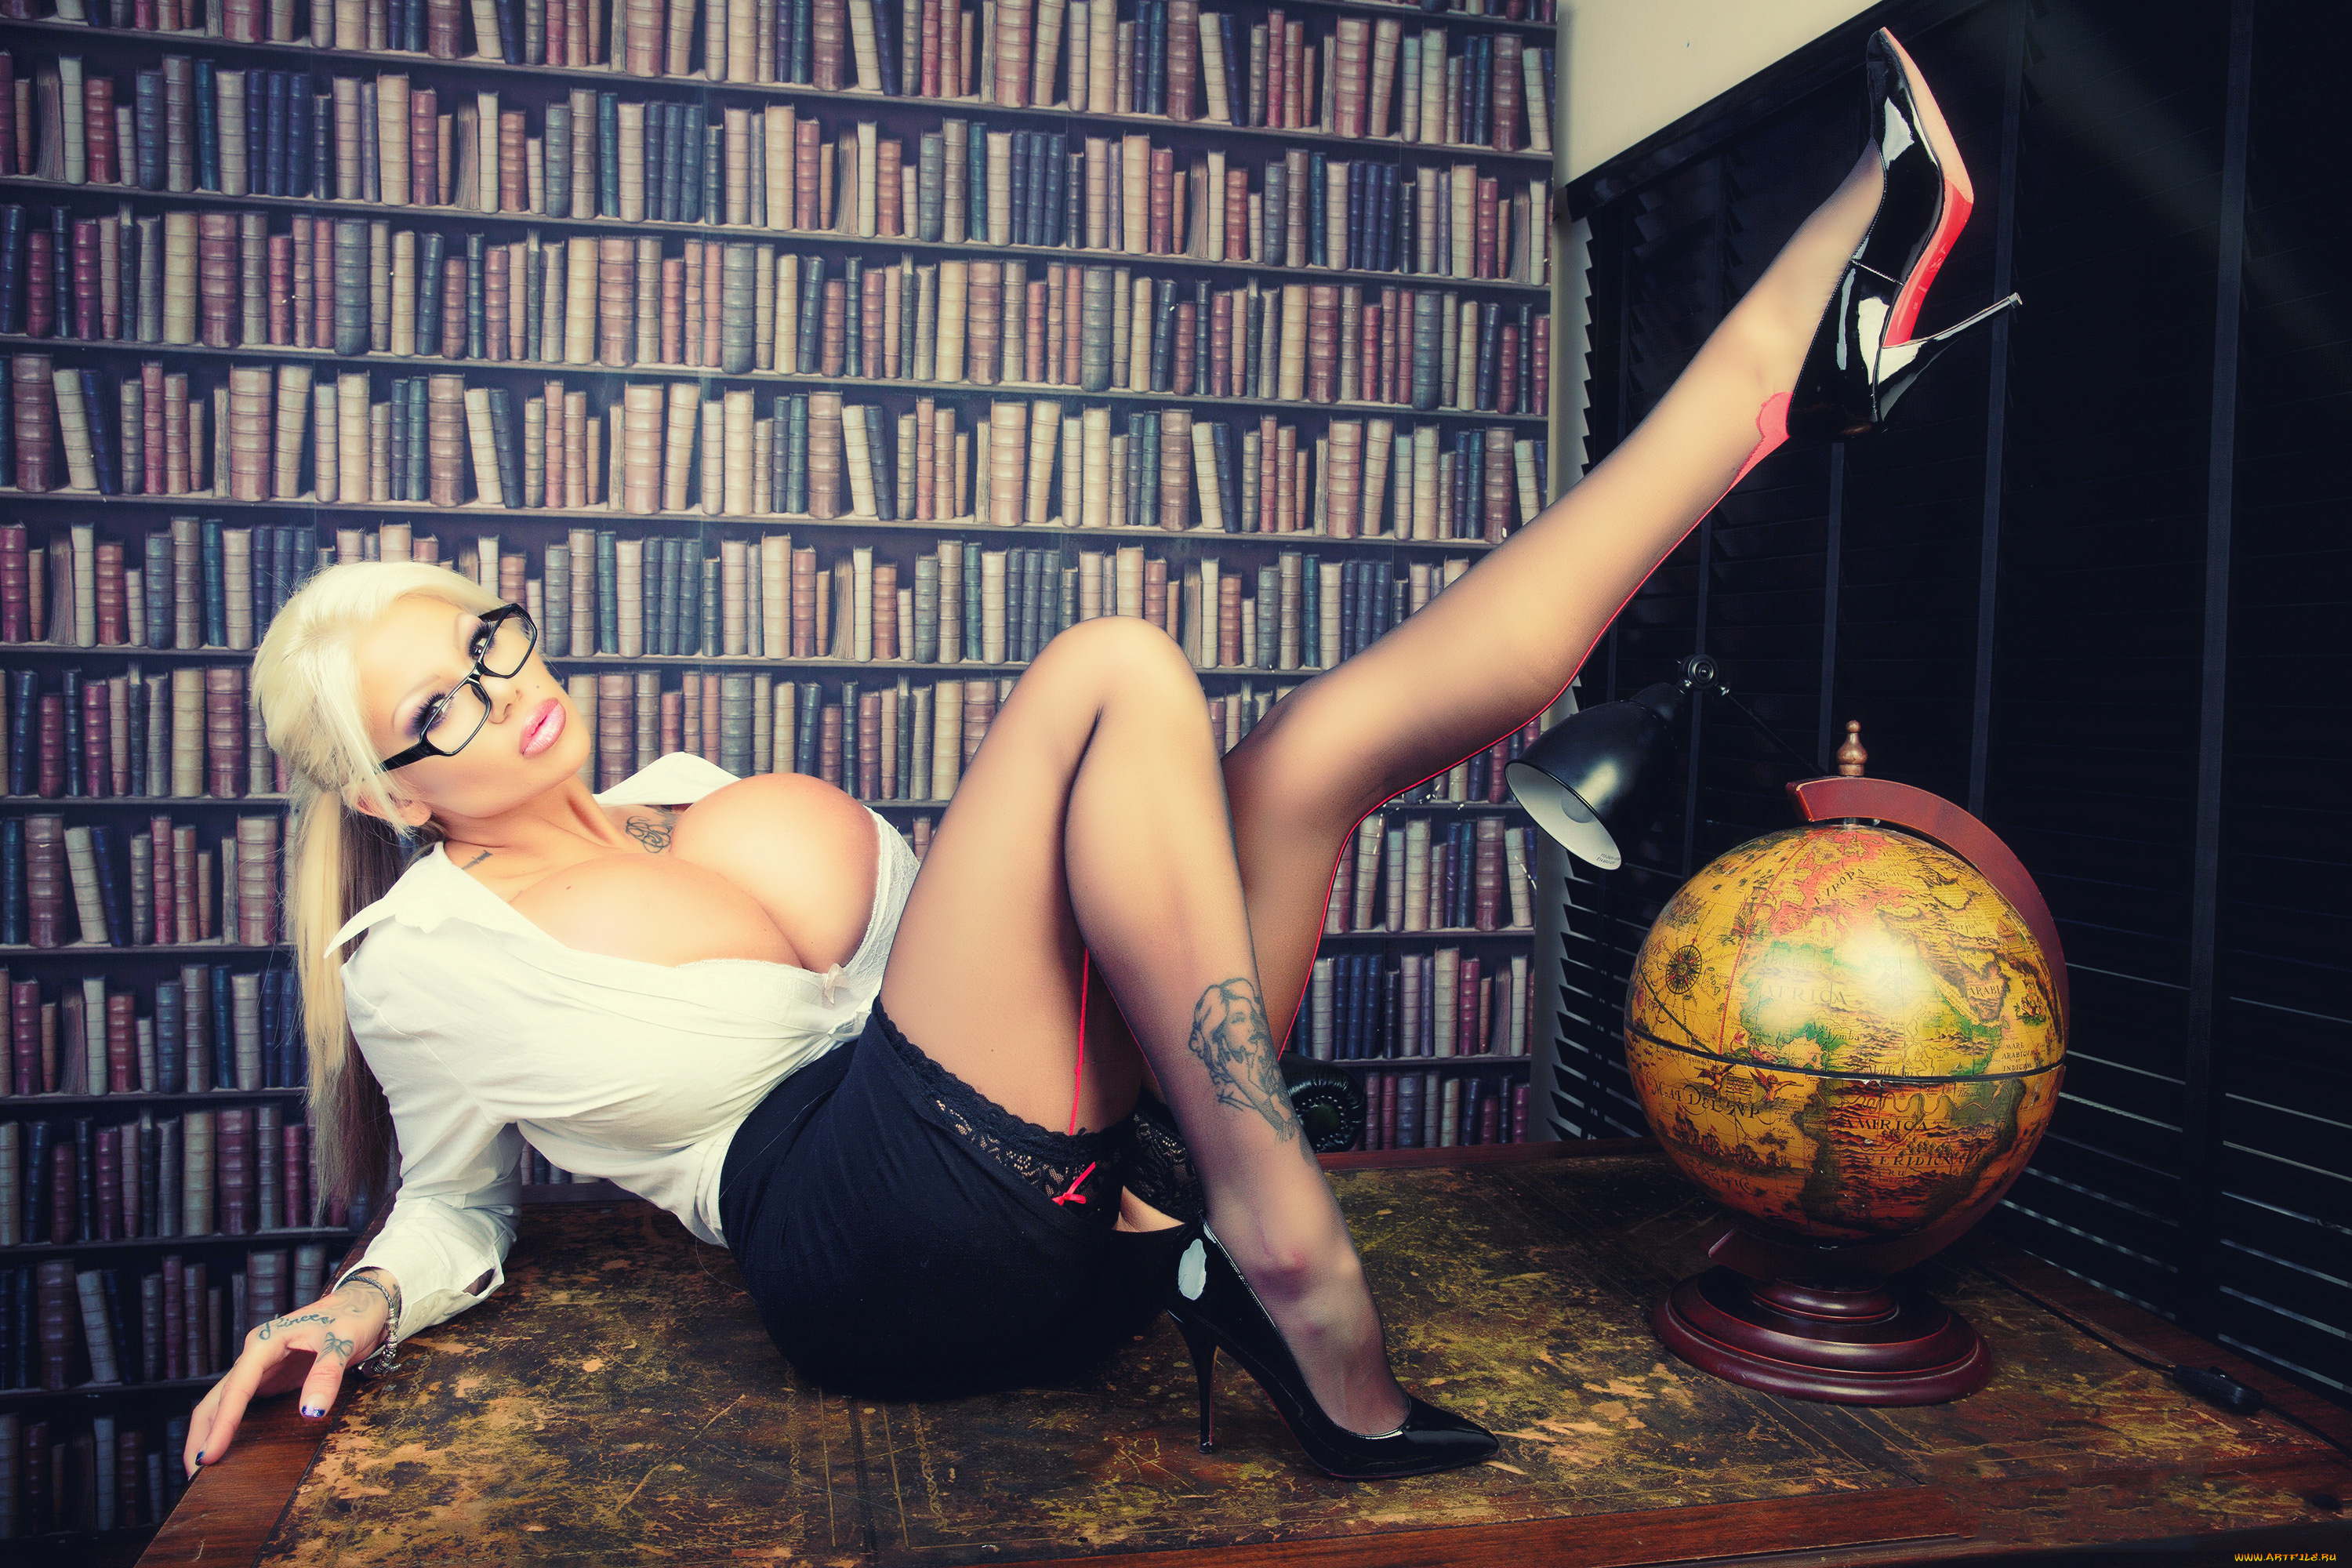 Blonde with giant boobies Candy Charms shows her sweet tattoos № 829563 бесплатно